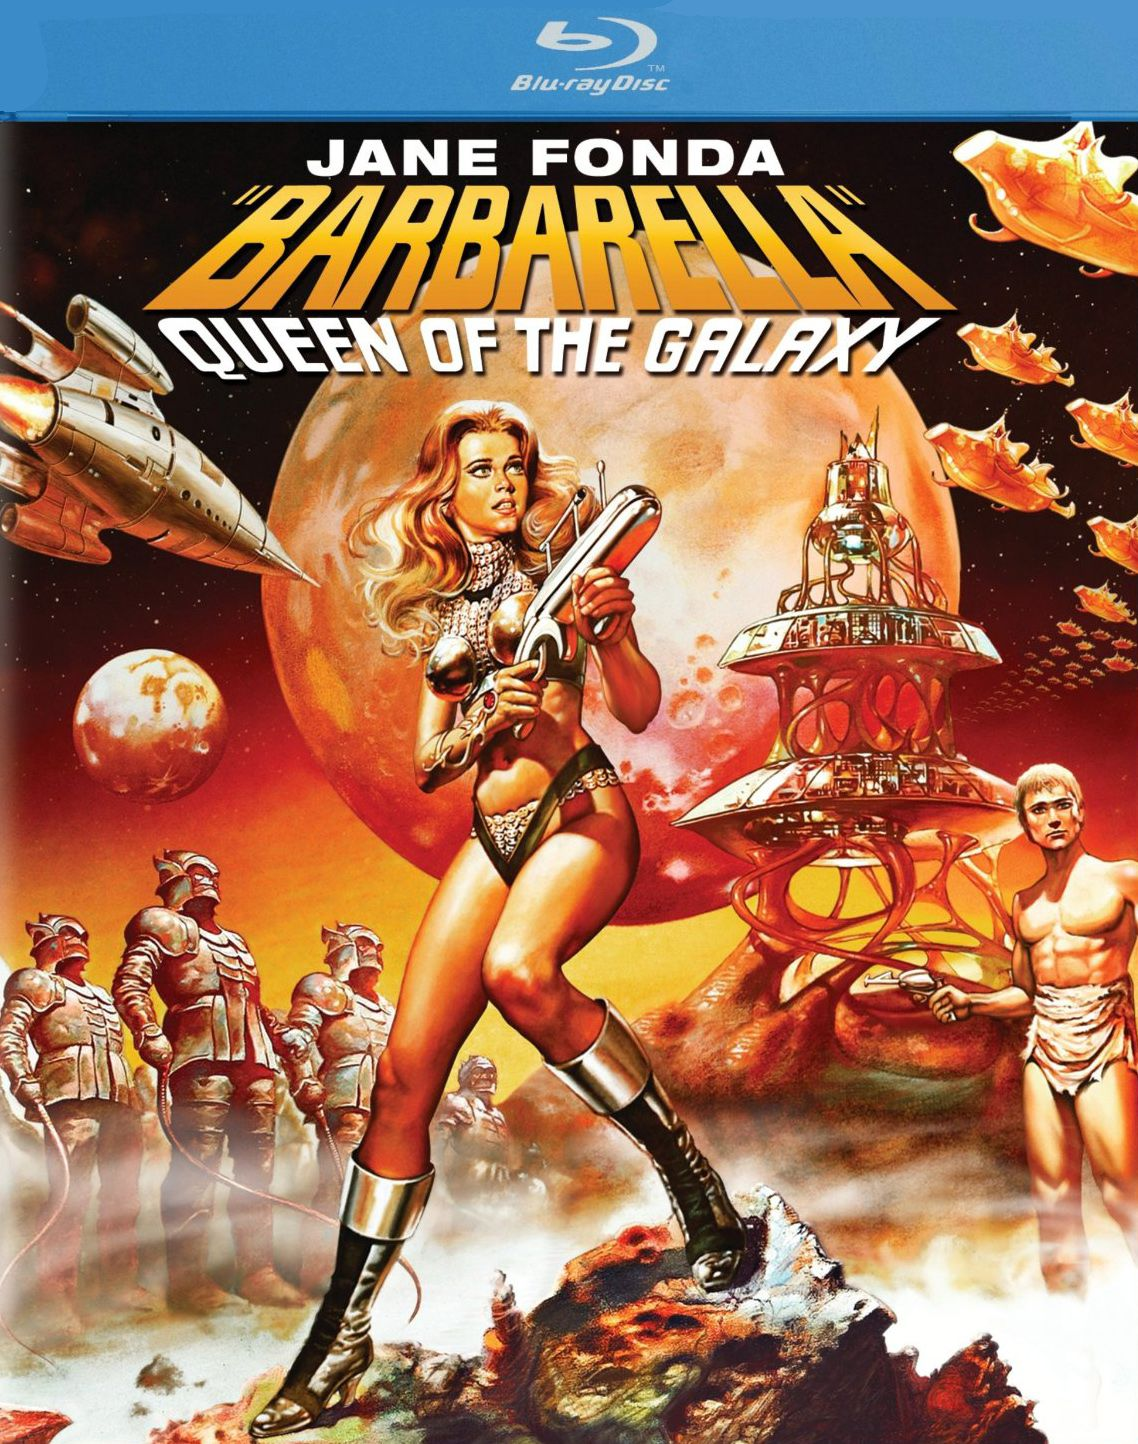 Publicity still for Barbarella